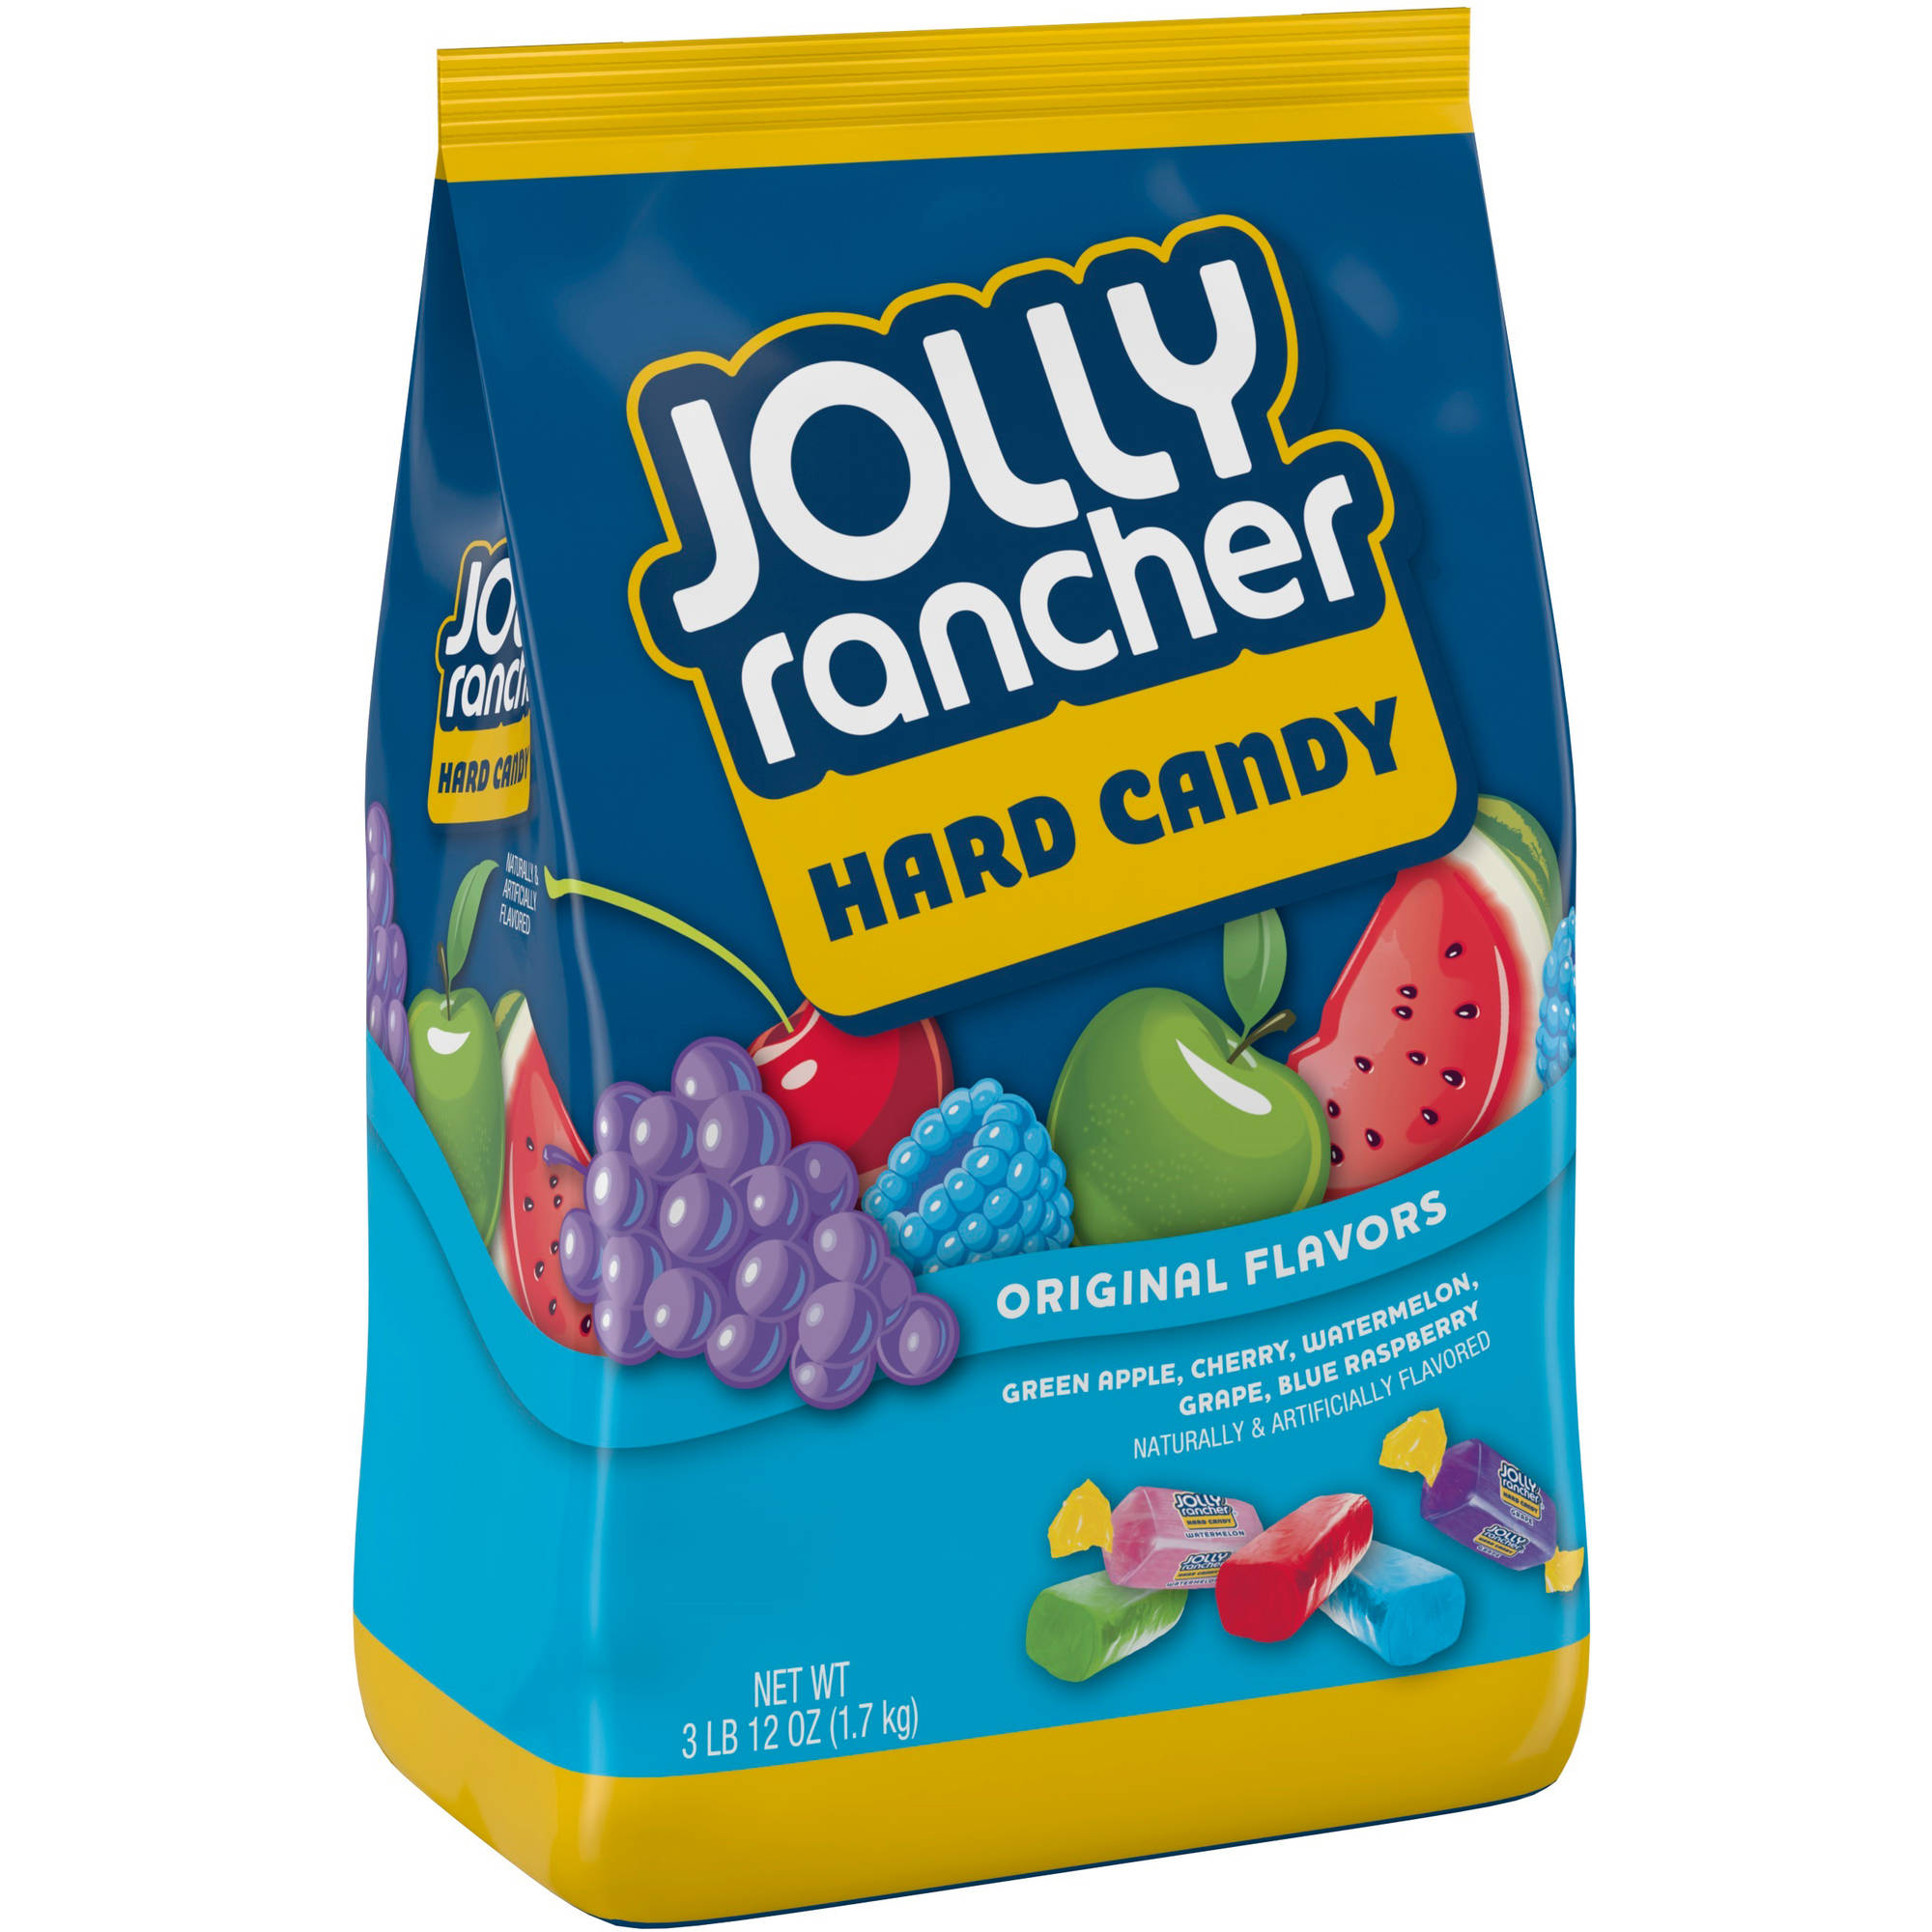 Jolly Ranchers Hard Candy, 3.75 lb